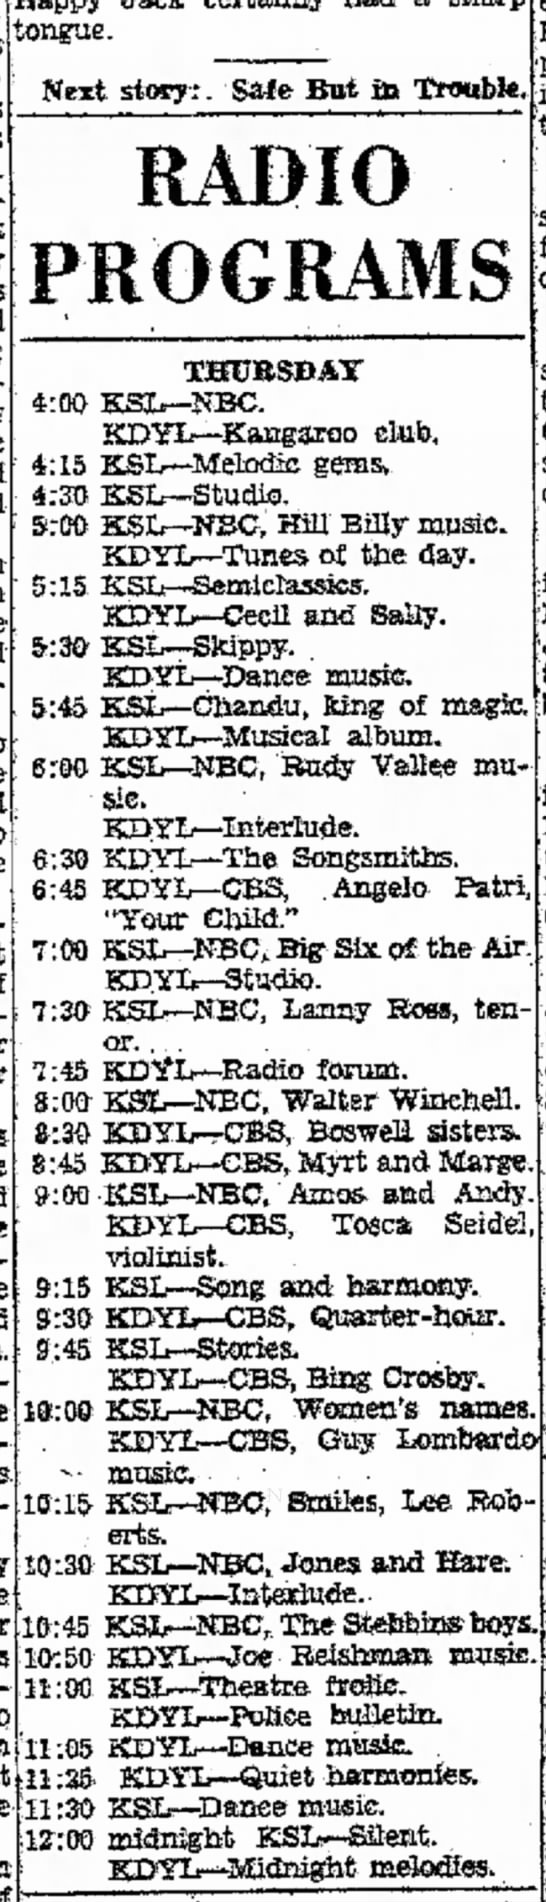 1931 KSL Radio Program schedule - I* However, worm pick gets frequently Itch with...